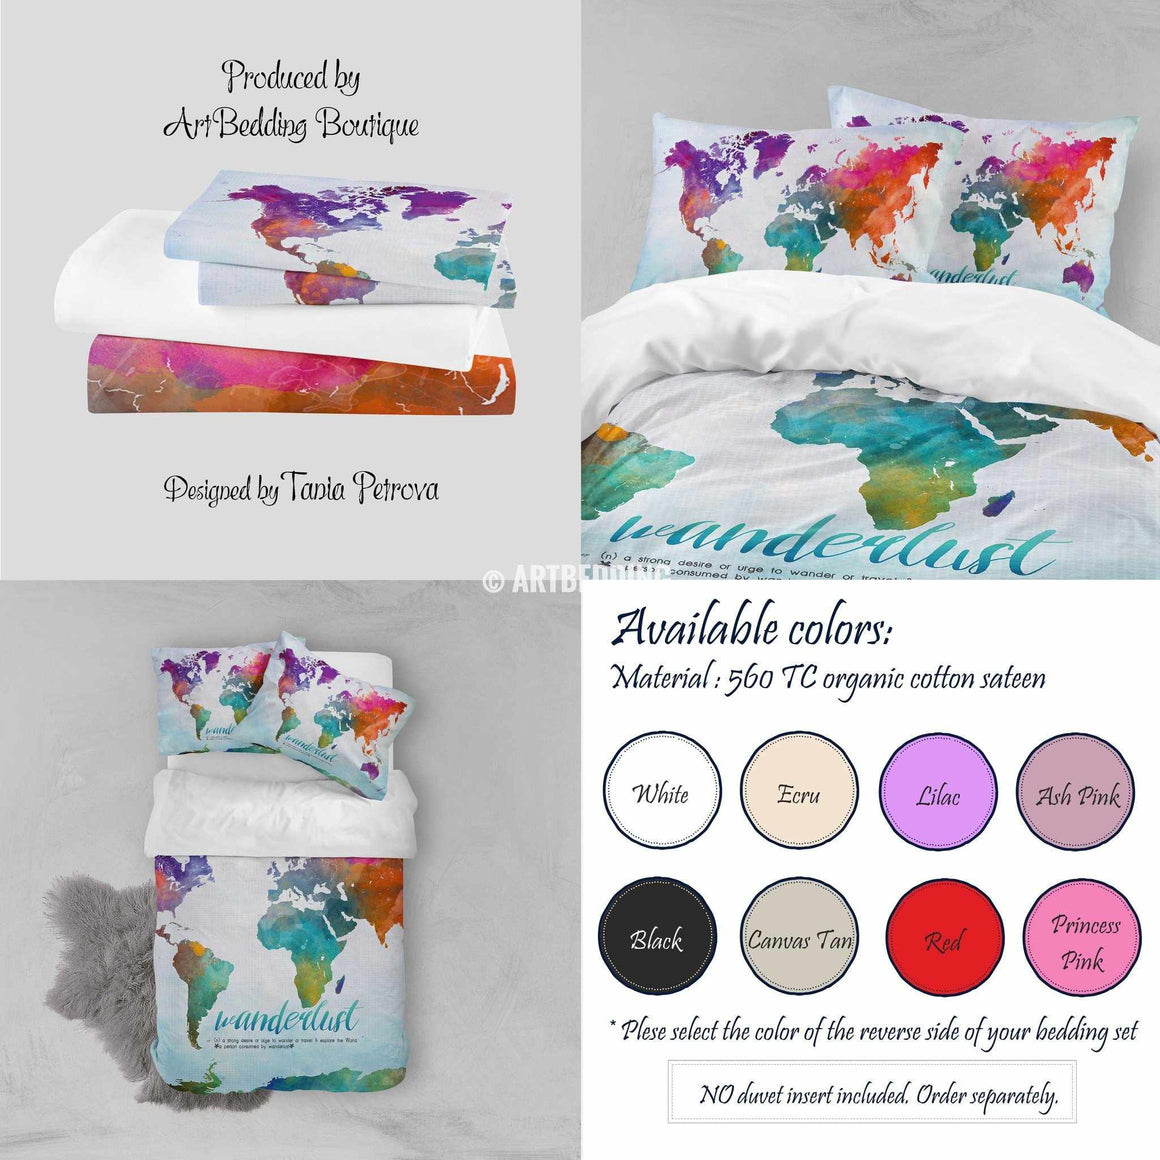 Watercolor map bedding, Wanderlust bedding, World map art duvet cover set, Bohemian duvet cover set, Dorm bedding, watercolor bedroom decor Bedding set